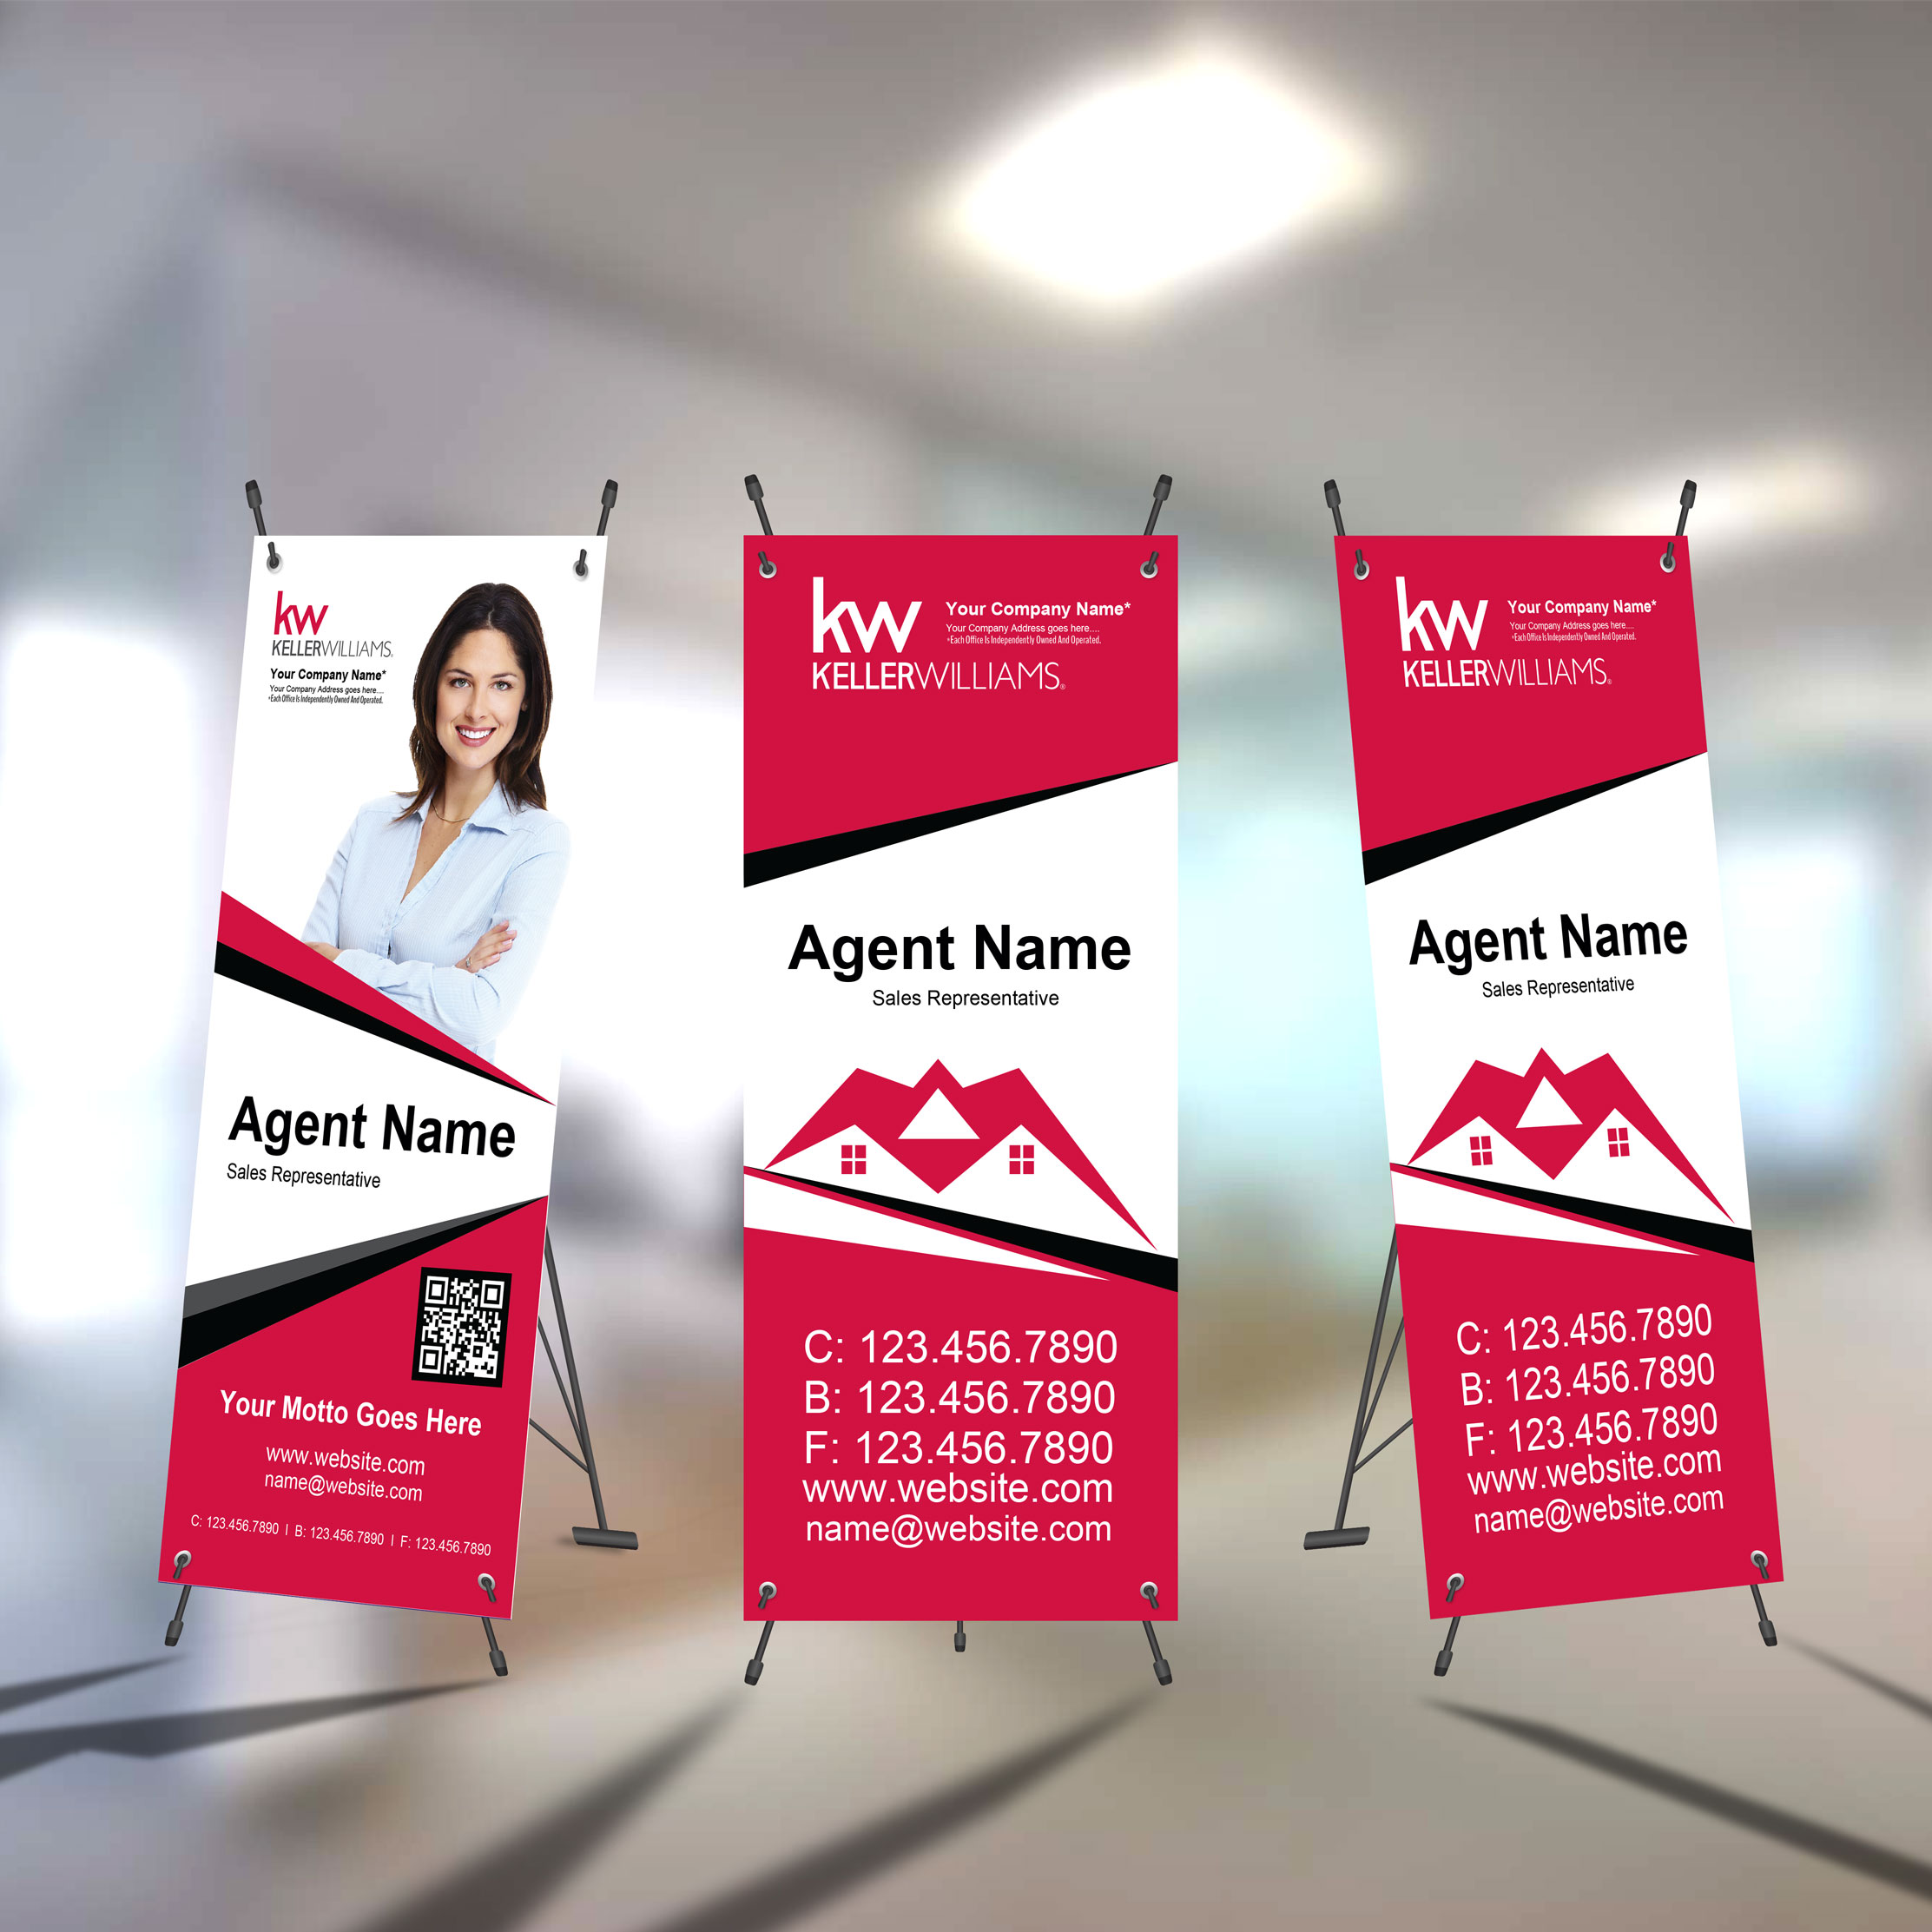 X-Frame Banners<br><br> - Keller Williams